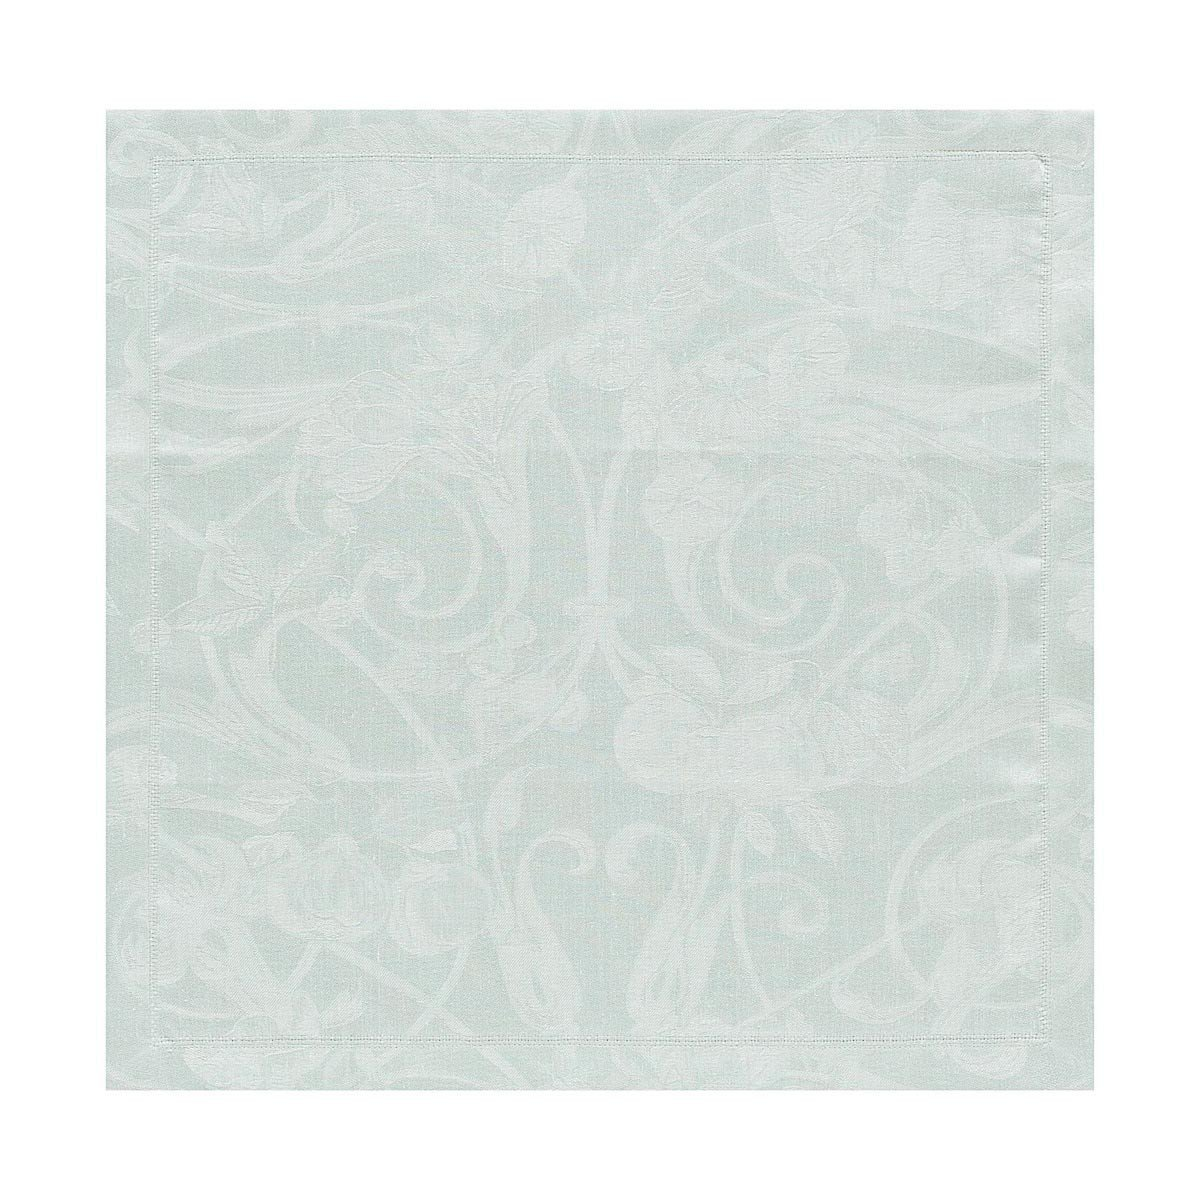 Le Jacquard Français Table Linen Tivoli in Mist Fig Linens napkin